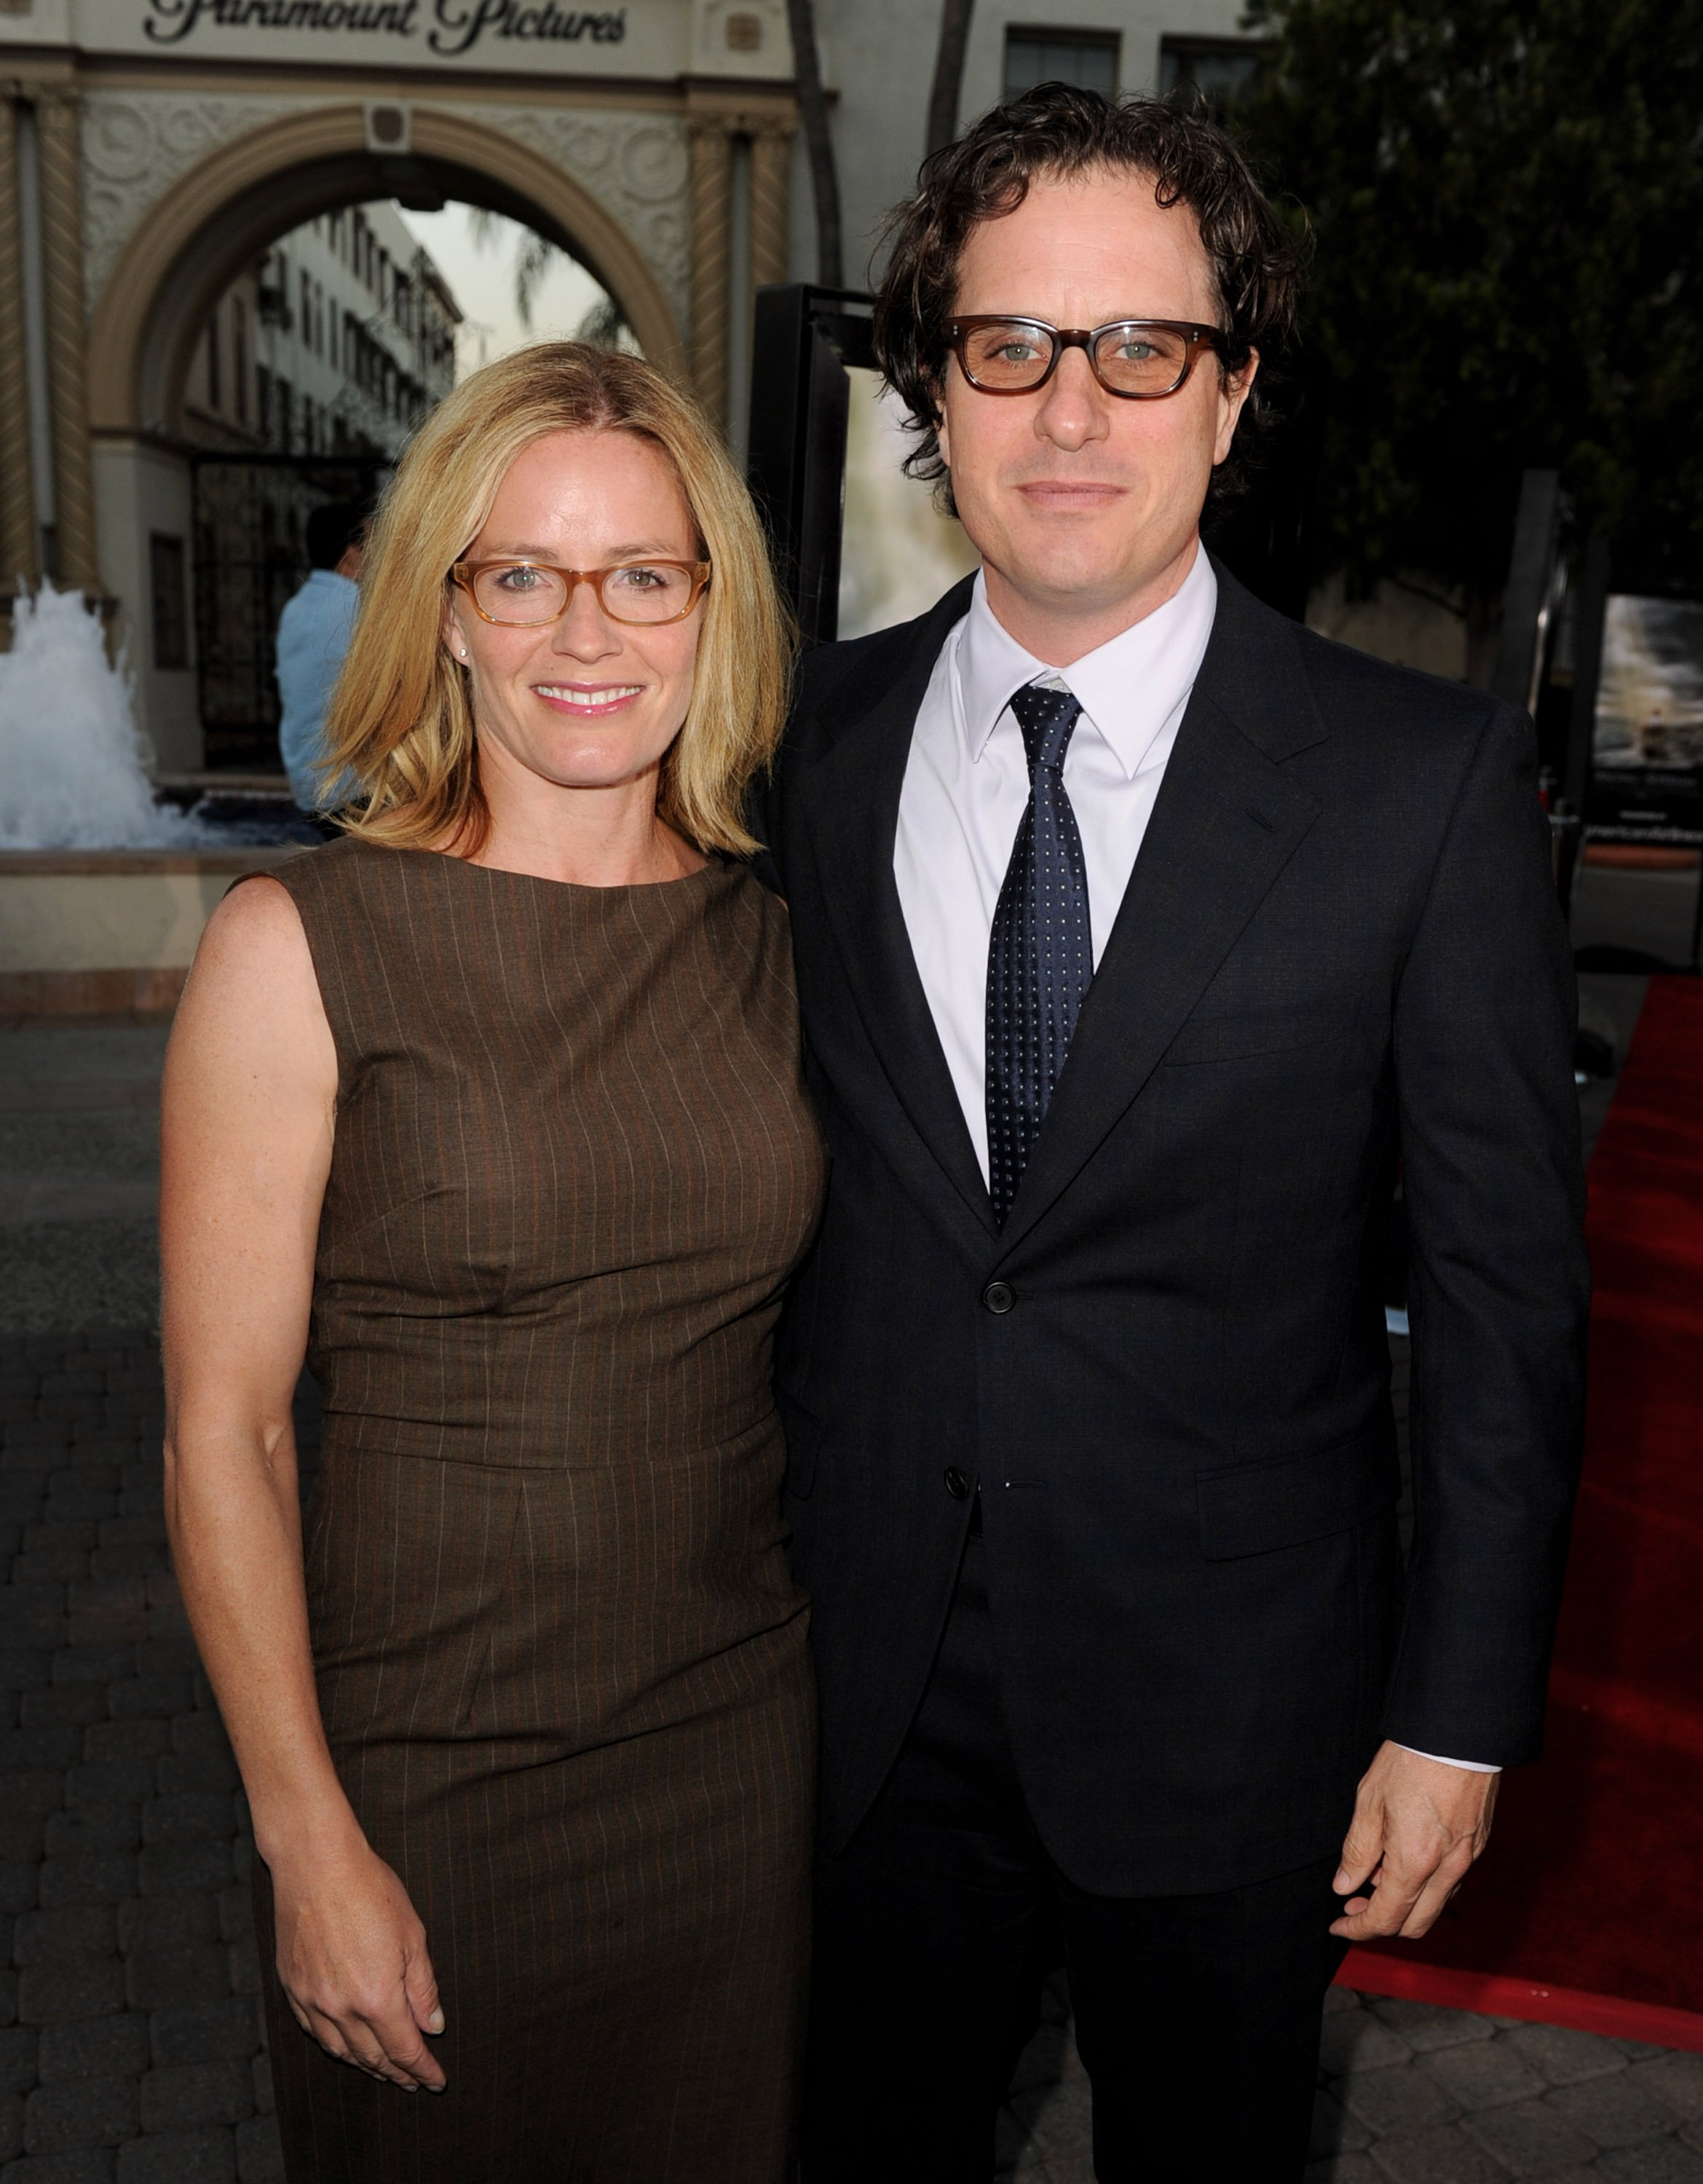 """Elisabeth Shue and Davis Guggenheim at the premiere of """"Waiting for """"Superman"""" at the Paramount Theater on September 20, 2010m in Los Angeles, California. 